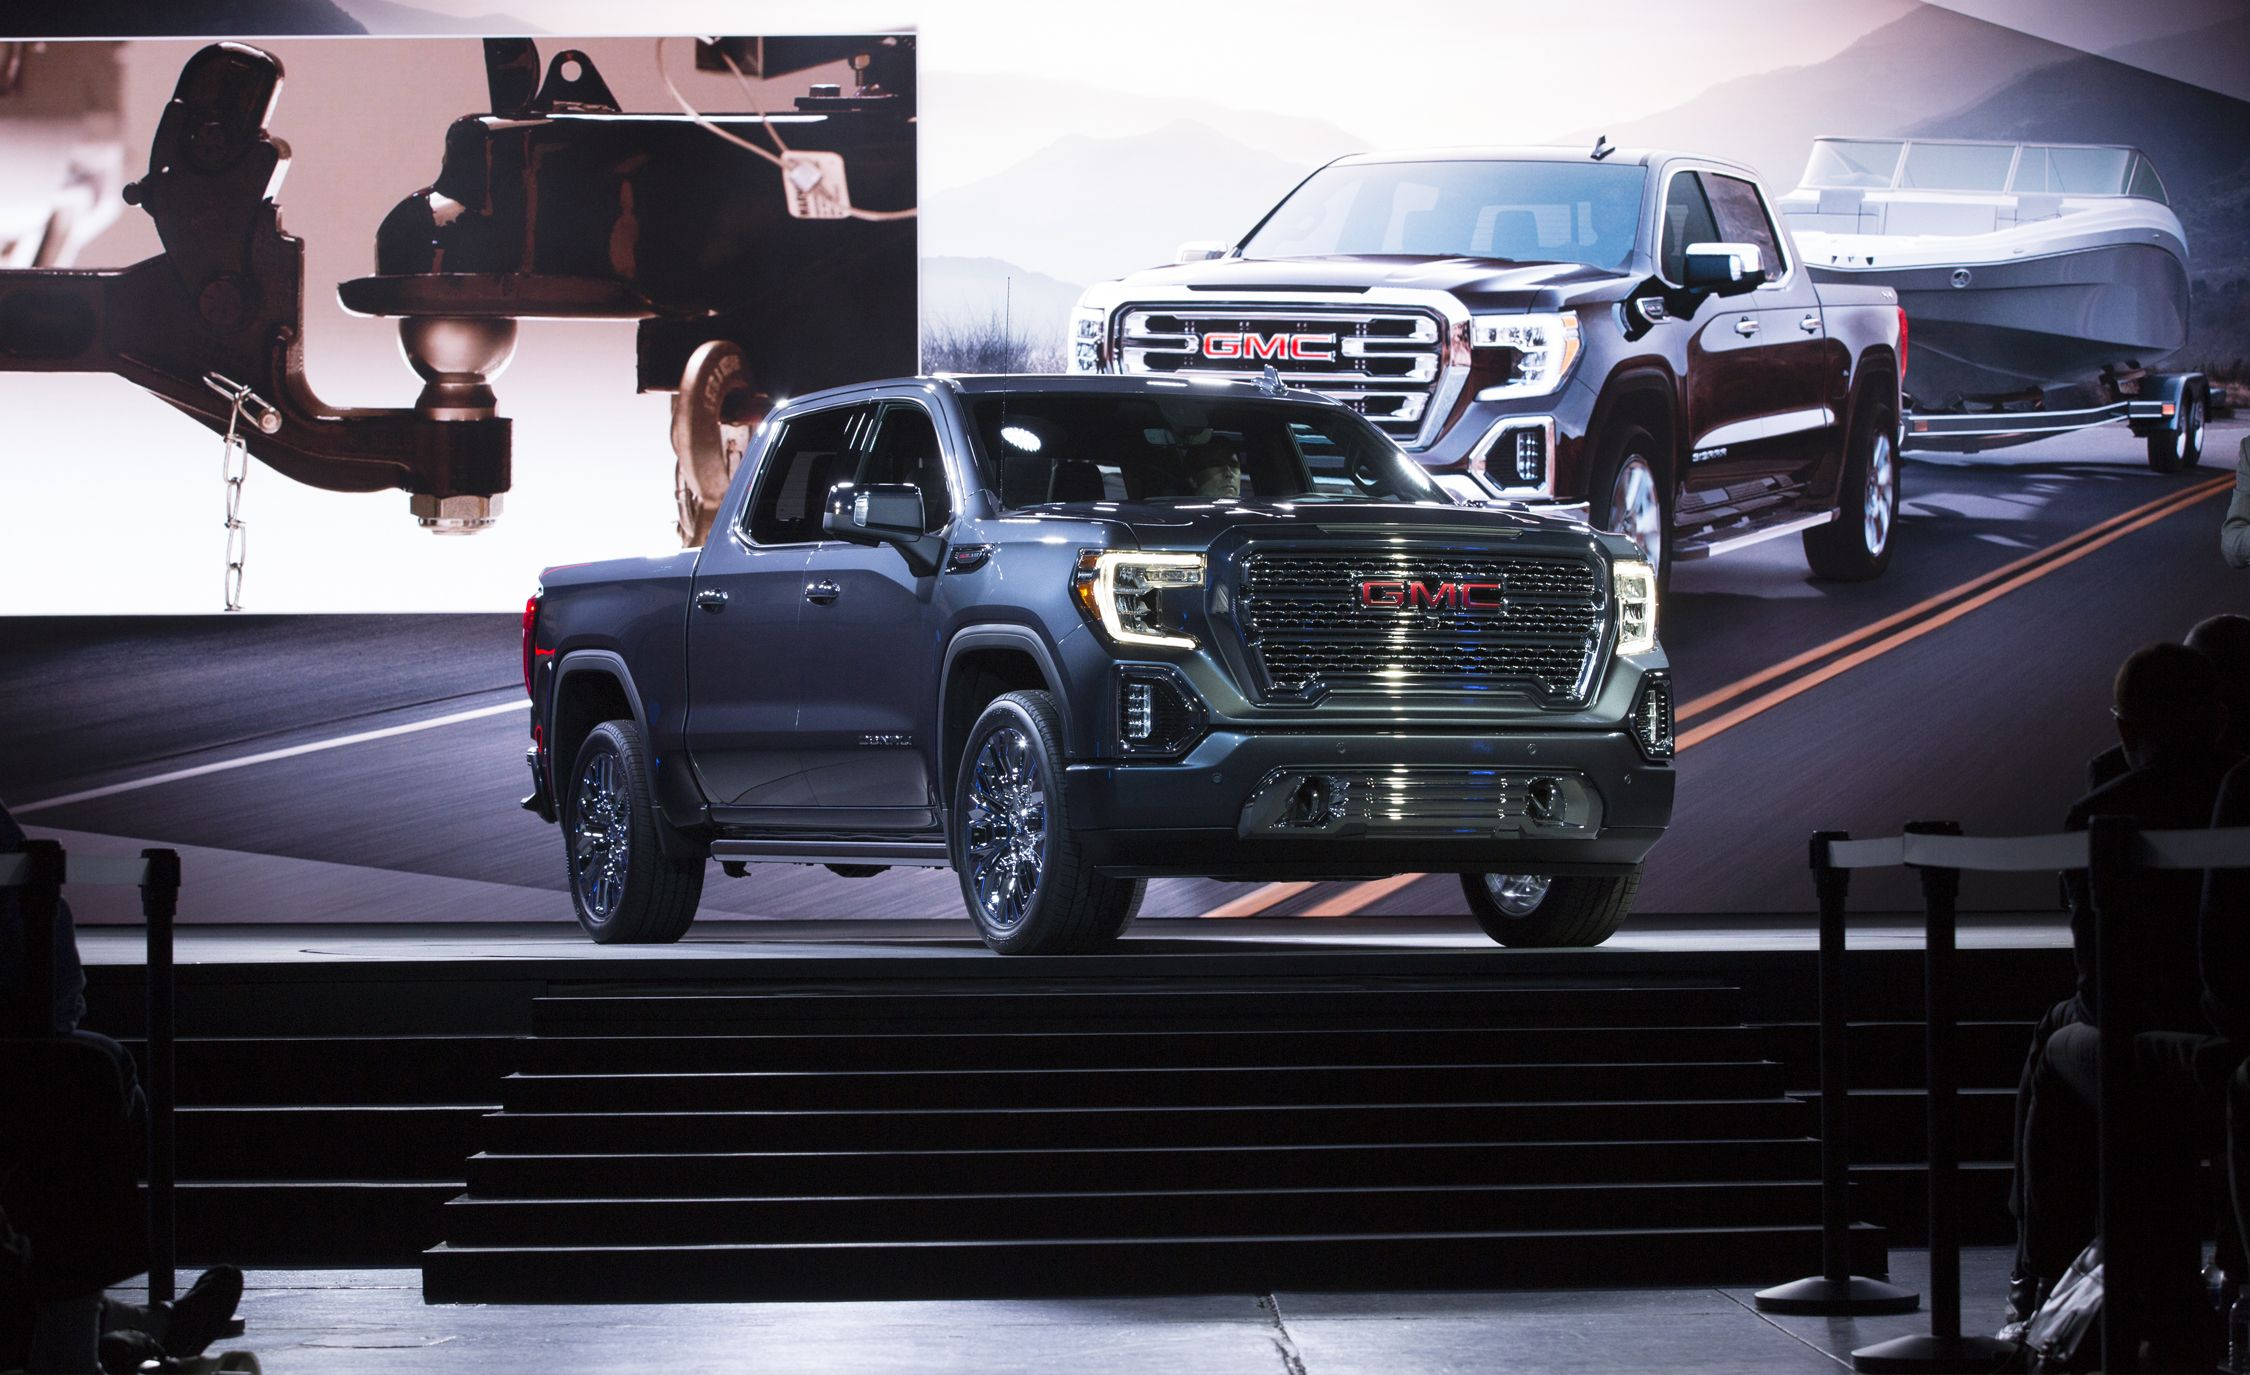 2019 GMC Sierra Revealed: Diesel Power and a Carbon-Fiber Bed